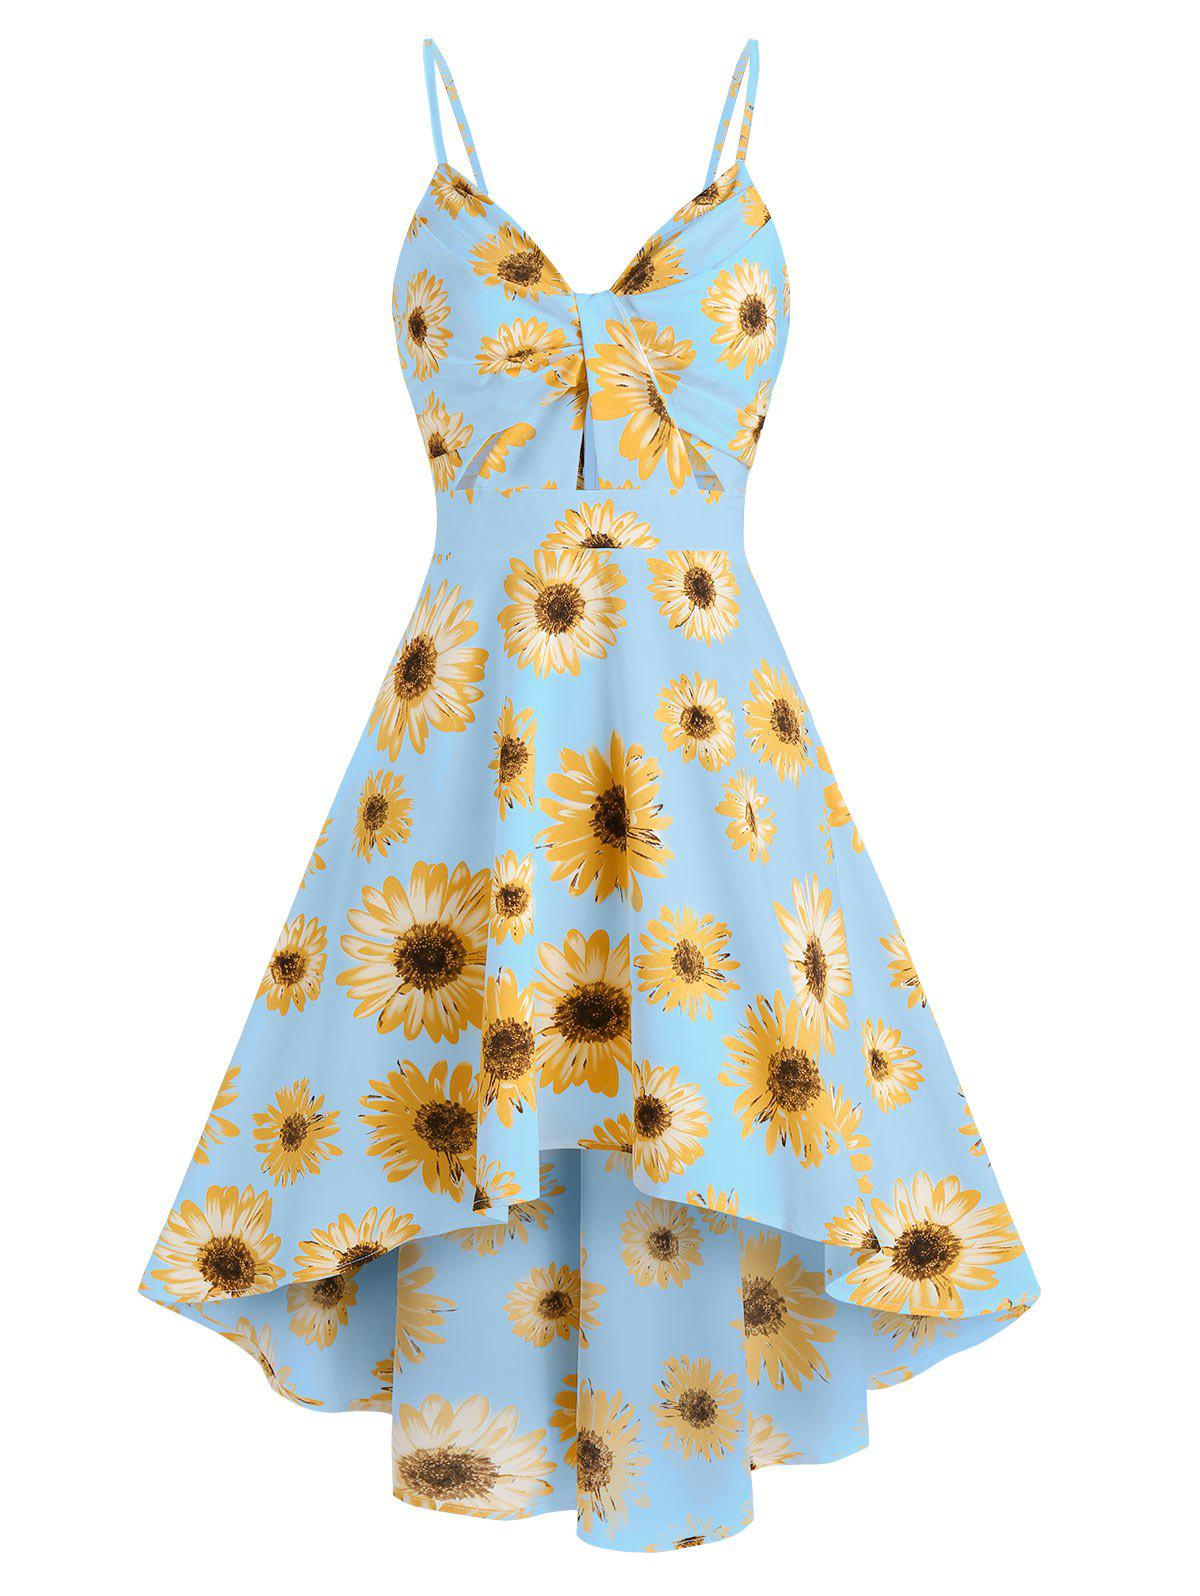 Sunflower Print Spaghetti Strap High Low Dress - LIGHT BLUE 2XL